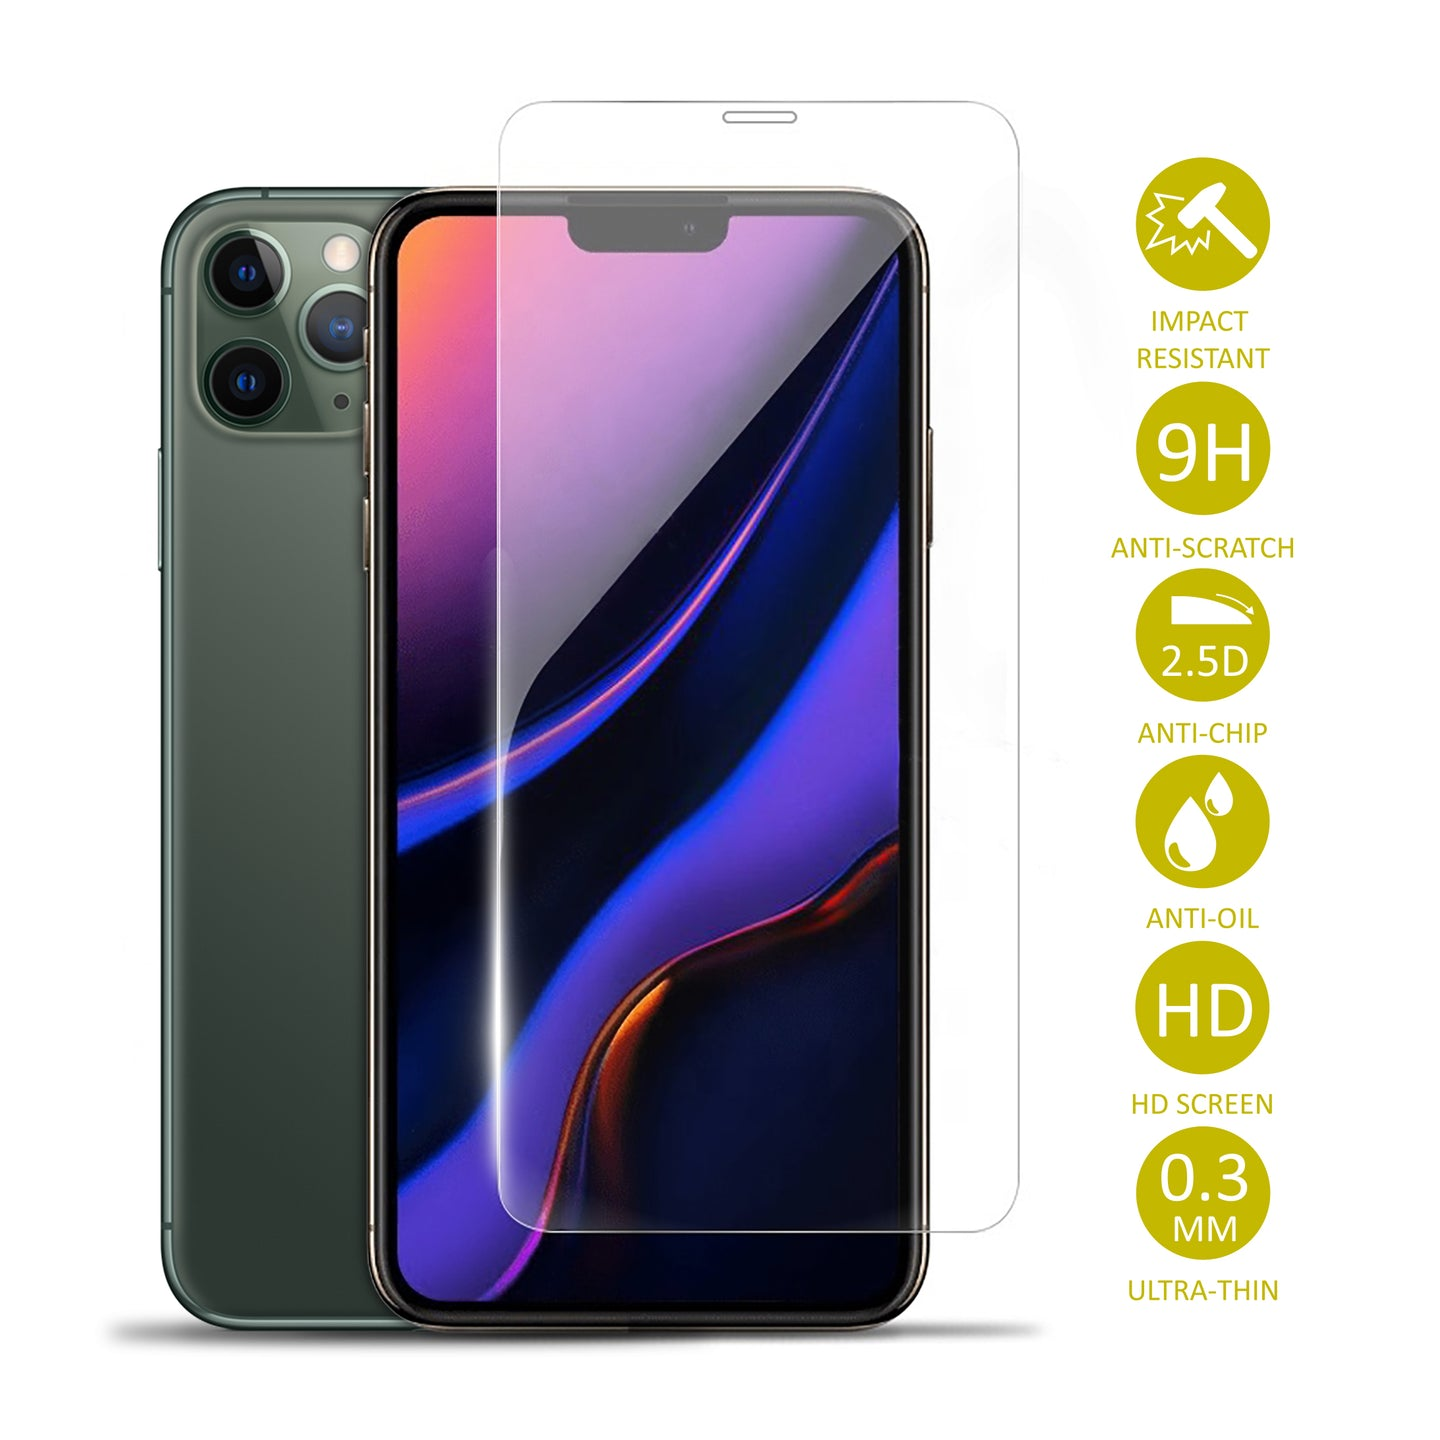 9H Tempered Glass Screen Protector 9H 透明鋼化玻璃手機保護貼 iPhone X XS XR 11 Pro Max impact resistant anti-scratch 防刮 防撞